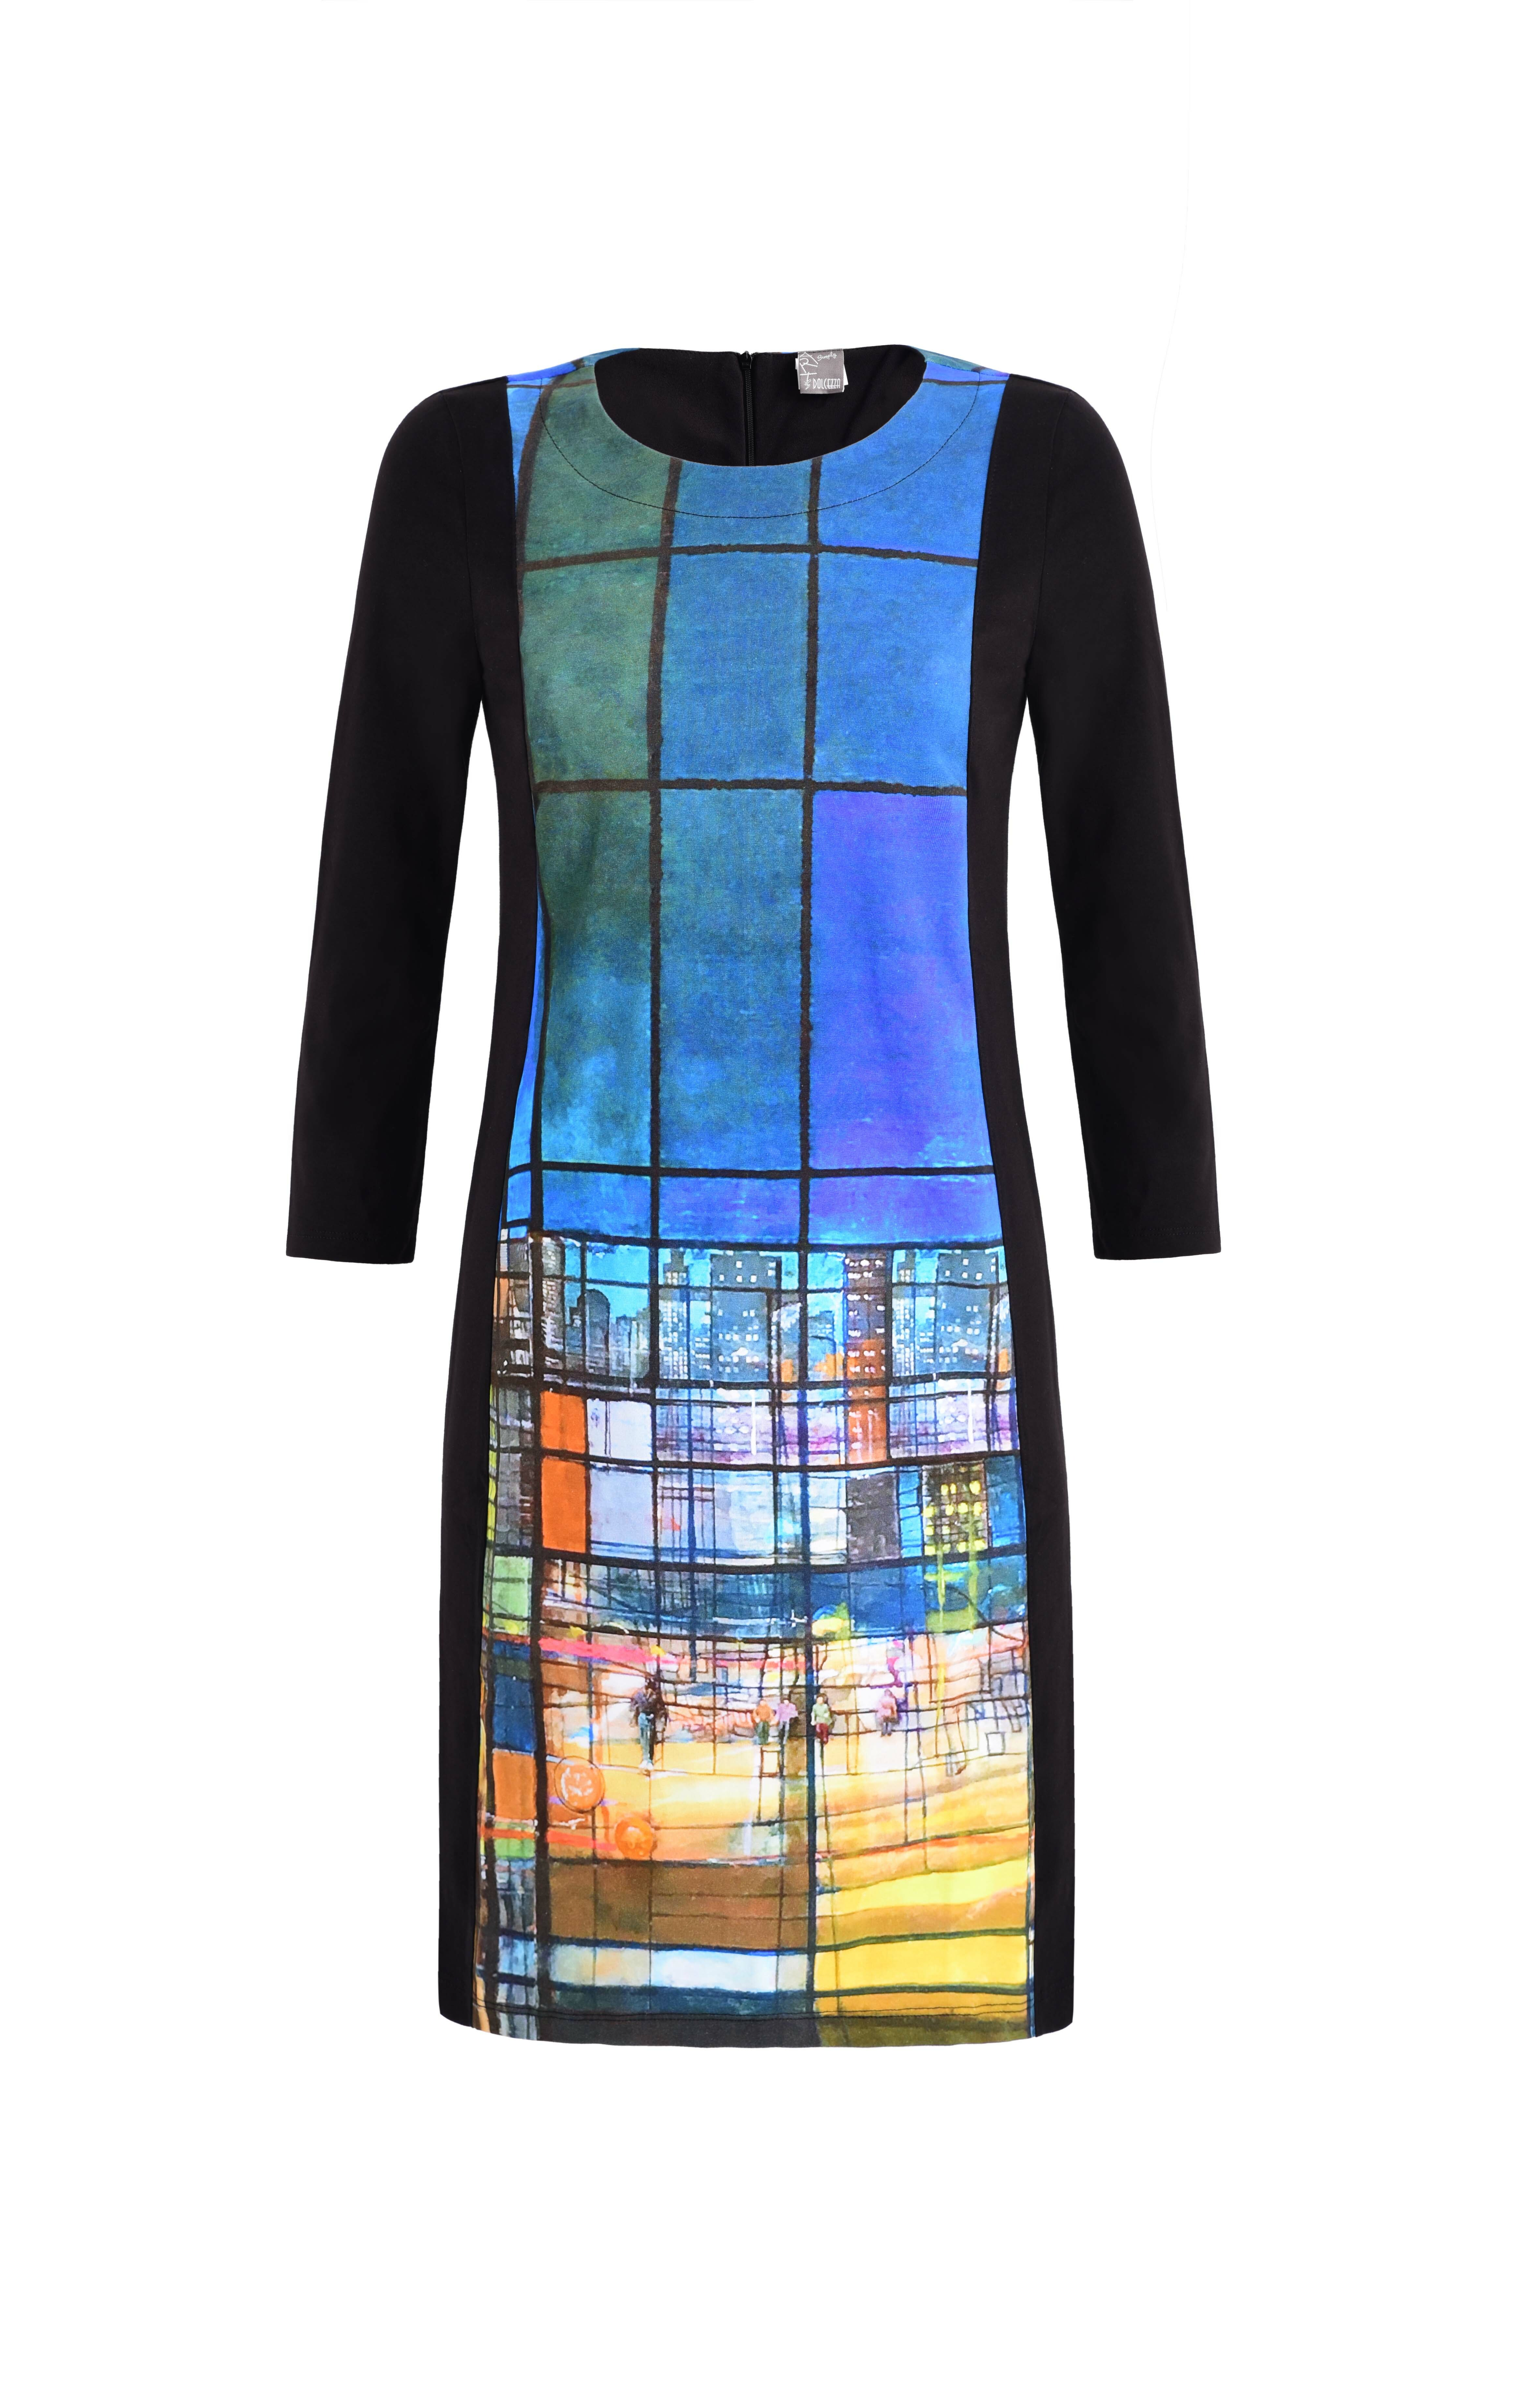 Simply Art Dolcezza: Colors Of Ville La Nuit Abstract Art Dress Dolcezza_SimplyArt_59714